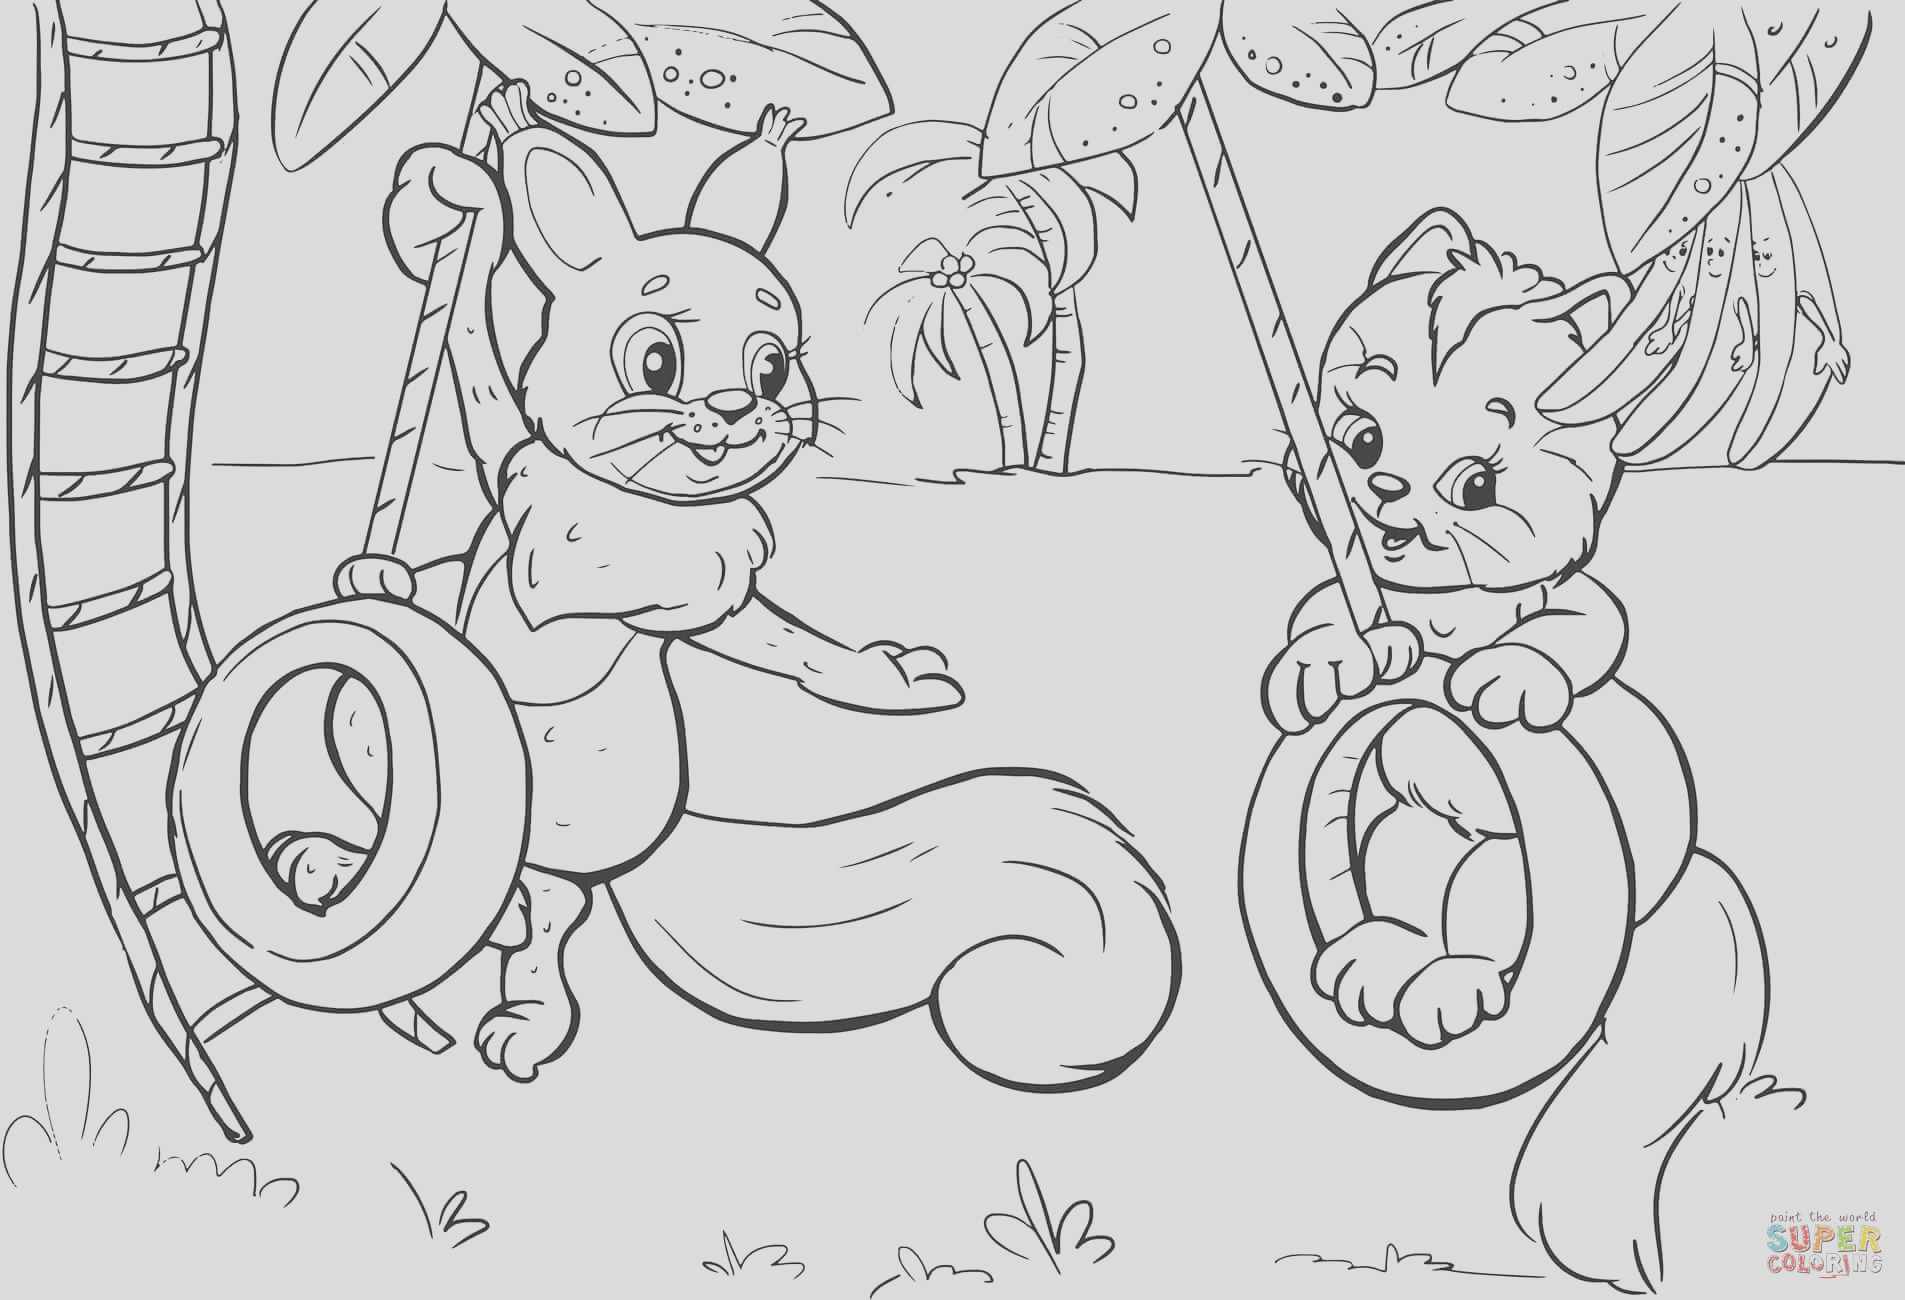 squirrel and cat swinging on tire swing